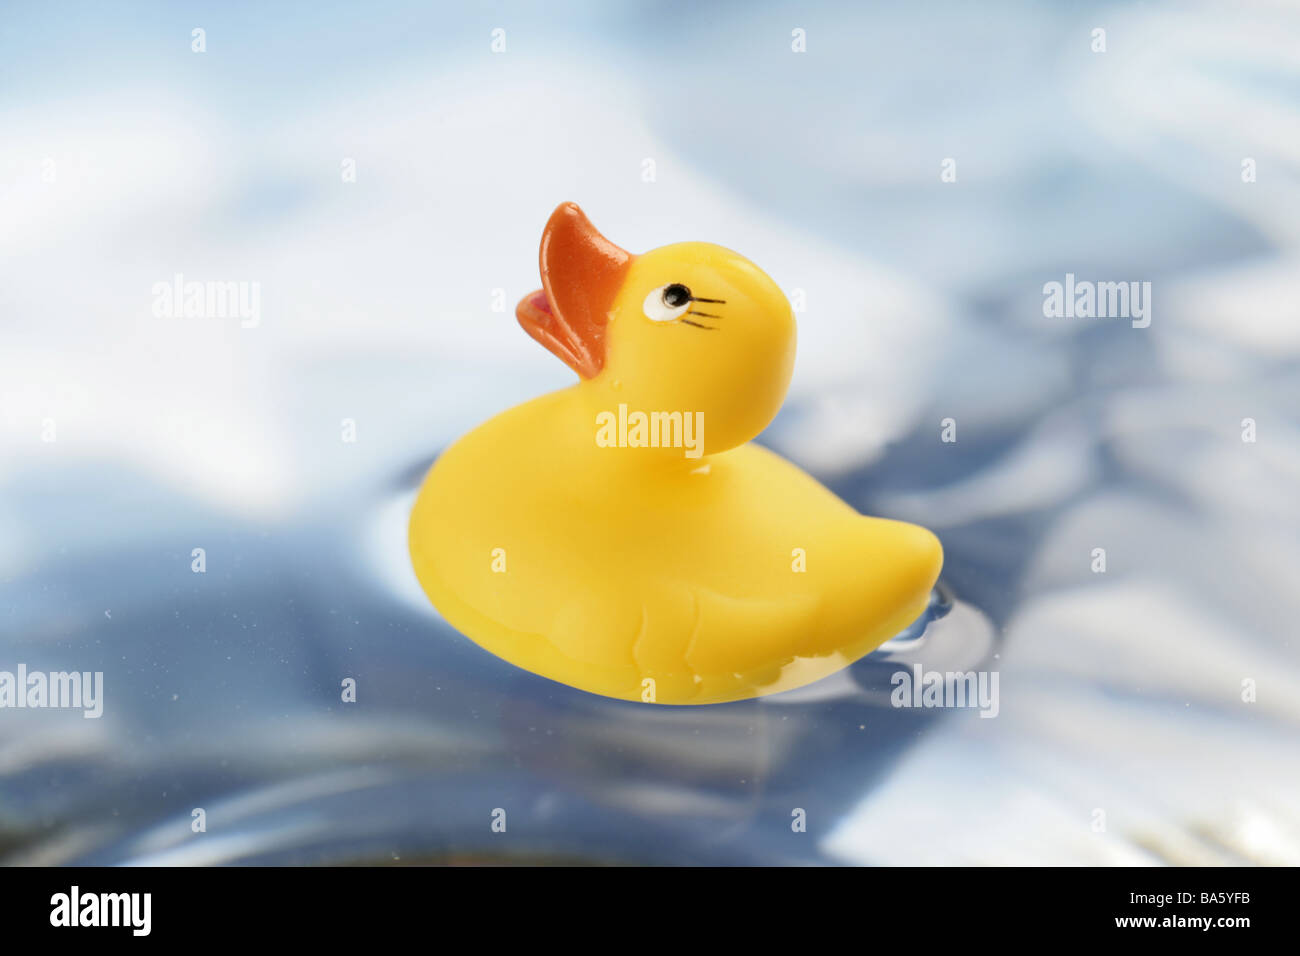 Water-surface bath-ducks yellow at the side toy toy plastic-duck toy-duck Quietscheente baby-toy bath-toy symbol - Stock Image